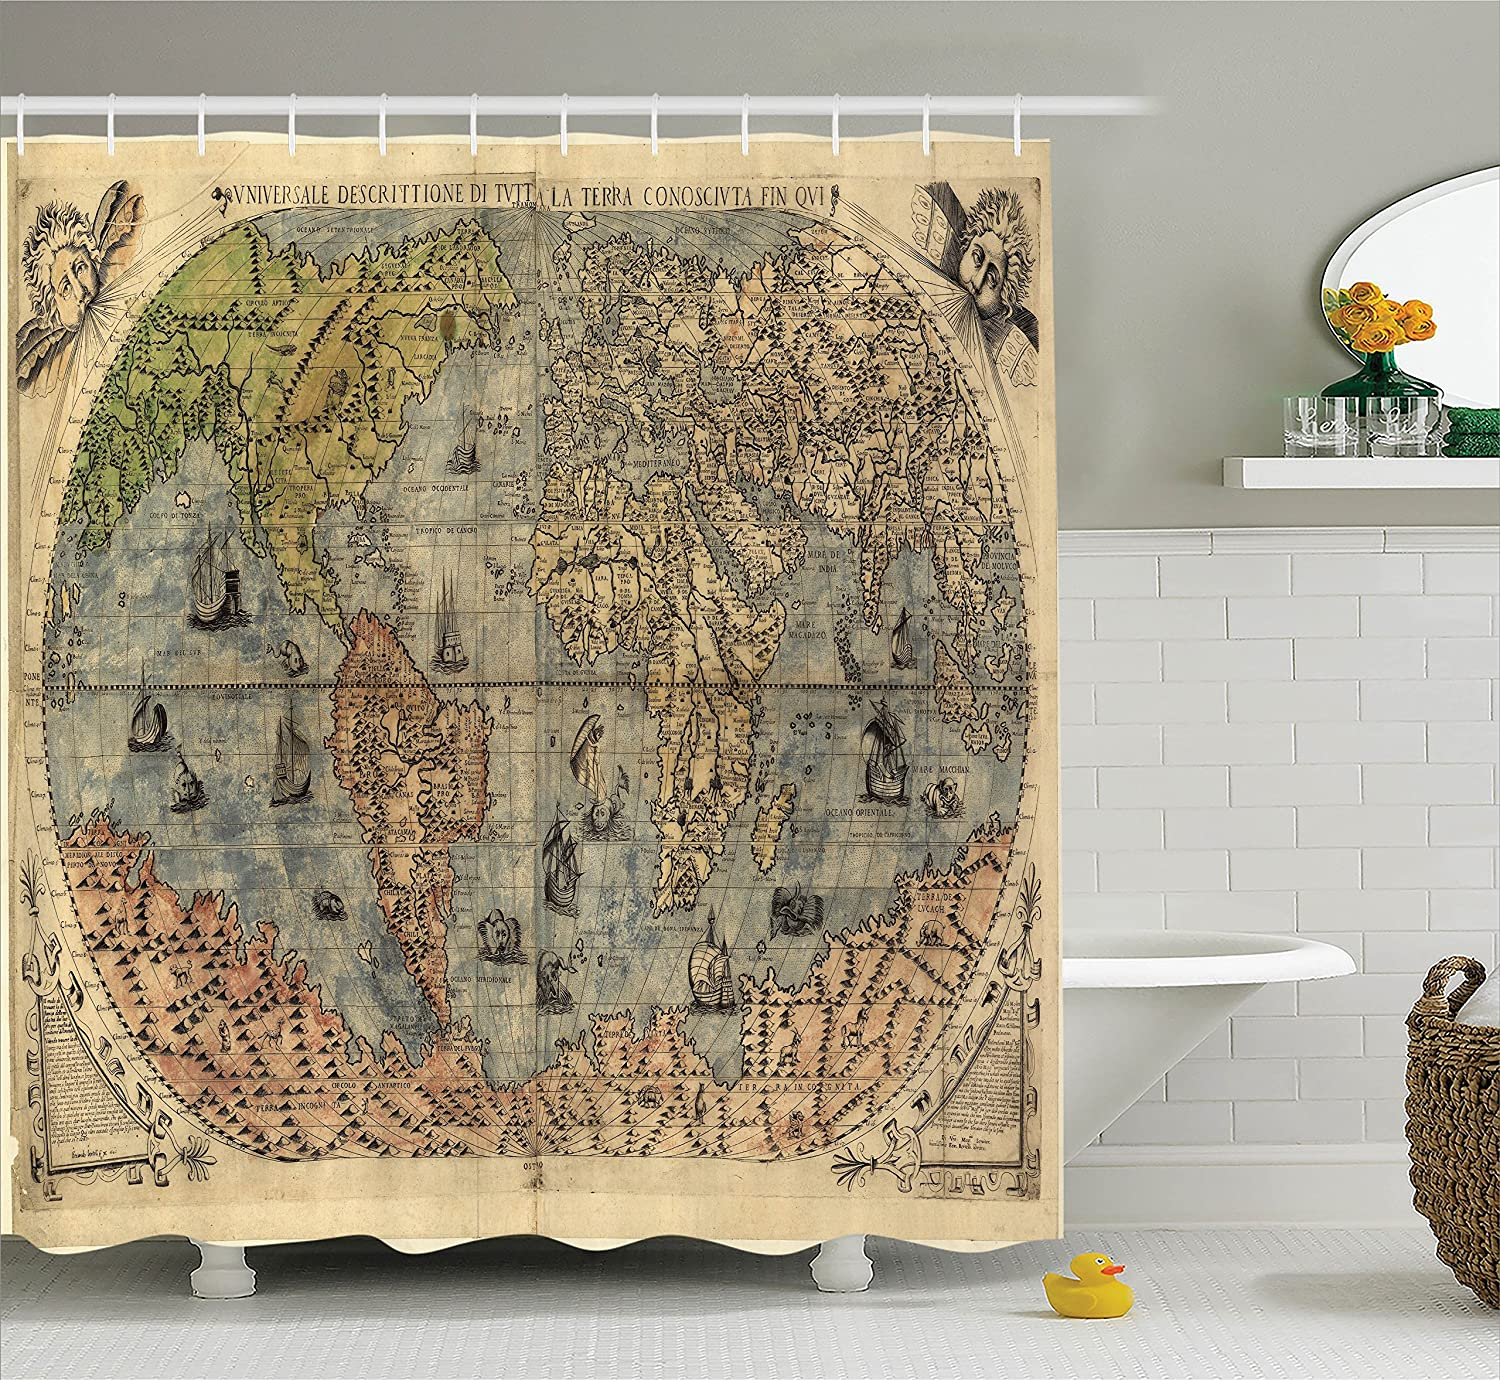 Ambesonne Americana Landscape Decor Shower Curtain by Fabric Bathroom Decor Set with Hooks 70 Inches Alberta Rocks with Ranges Composed of Shale Limestone Hill Places Grey Blue sc/_20745